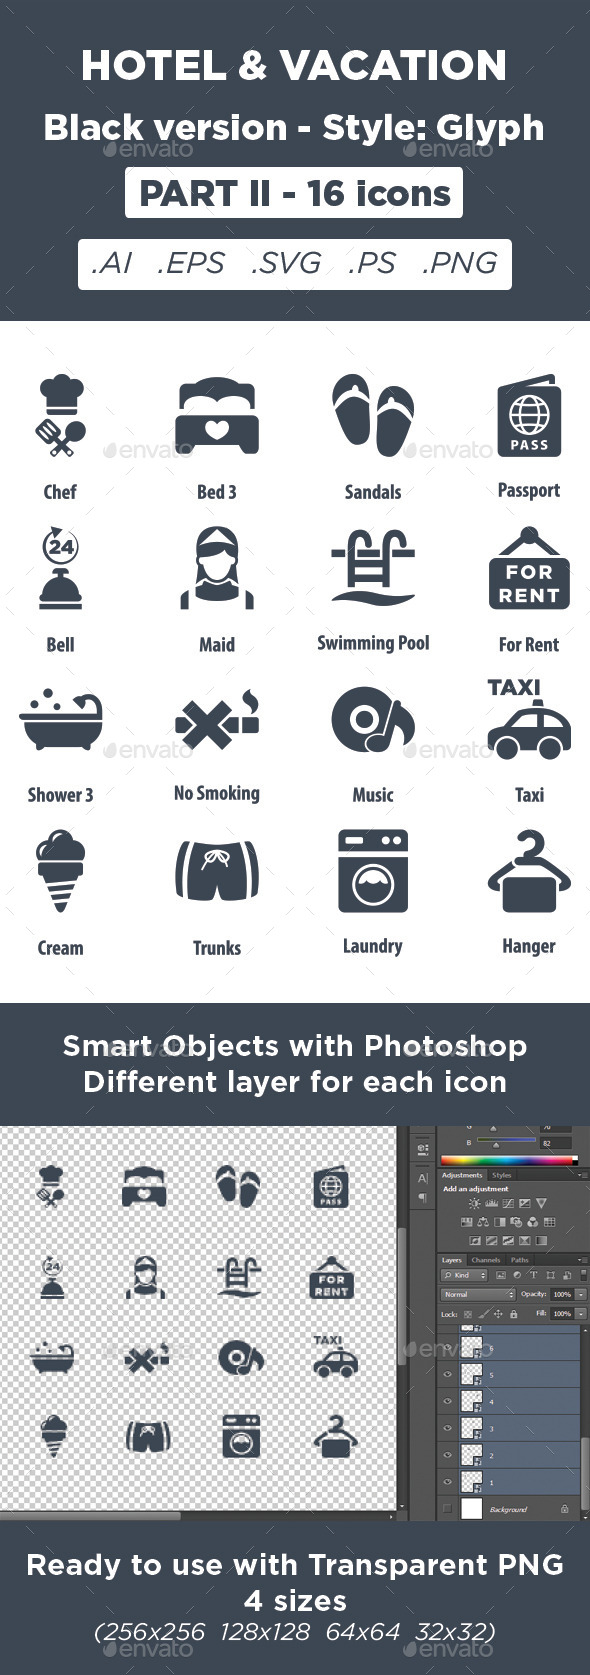 GraphicRiver Hotel & Vacation Icons Glyph style Part 2 11450688